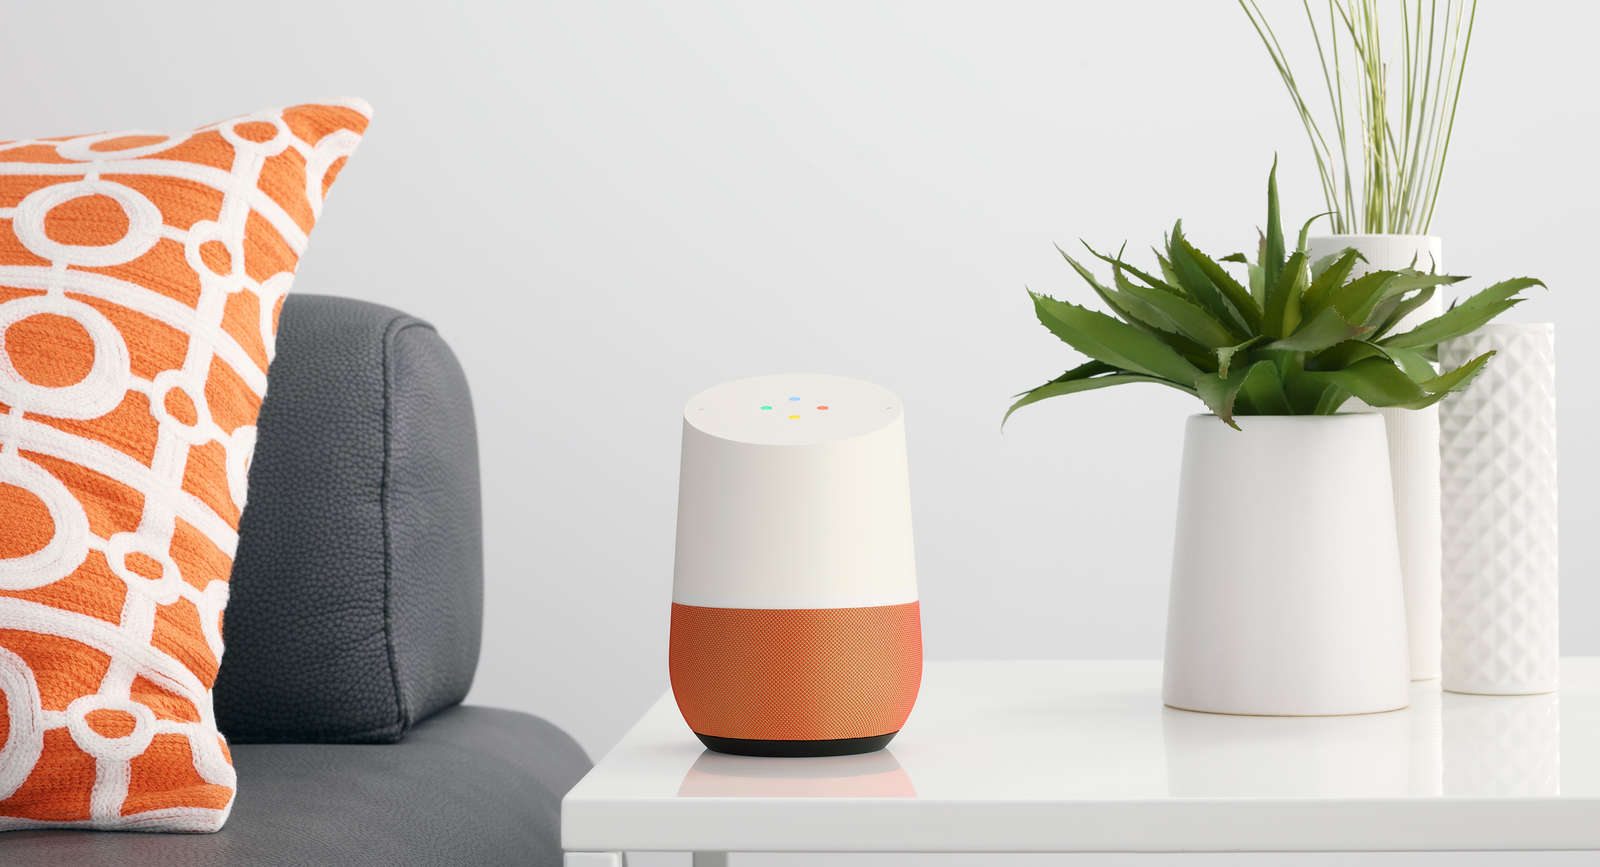 Google's voice assistant is putting Apple and Amazon to shame